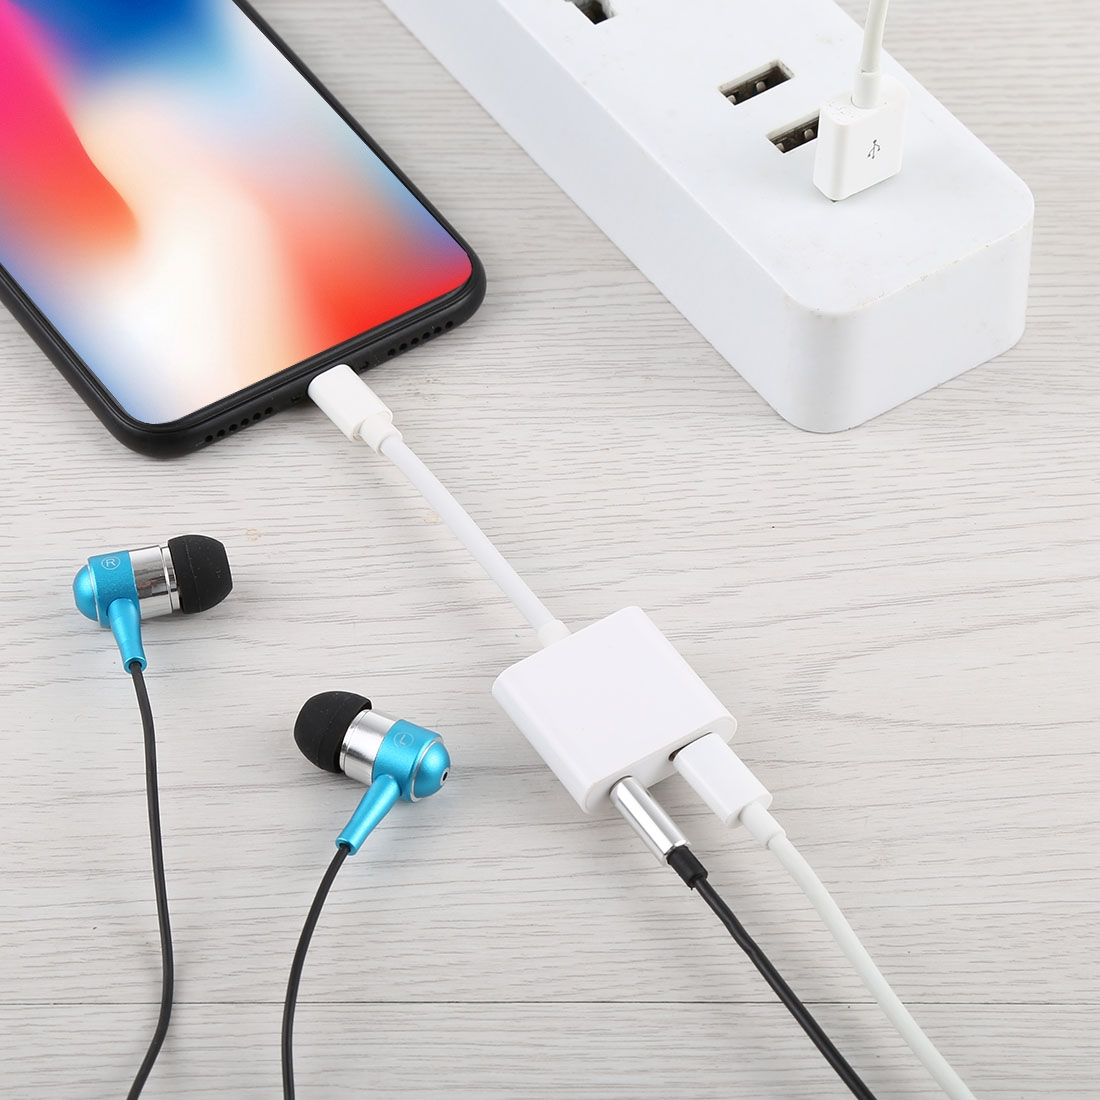 8 Pin Female + 3.5mm Audio Female to 8 Pin Male Charging & Listening Converter Adapter, For iPhone XR / iPhone XS MAX / iPhone X & XS / iPhone 8 & 8 Plus / iPhone 7 & 7 Plus / iPhone 6 & 6s & 6 Plus & 6s Plus / iPad, Support iOS 11.3 System